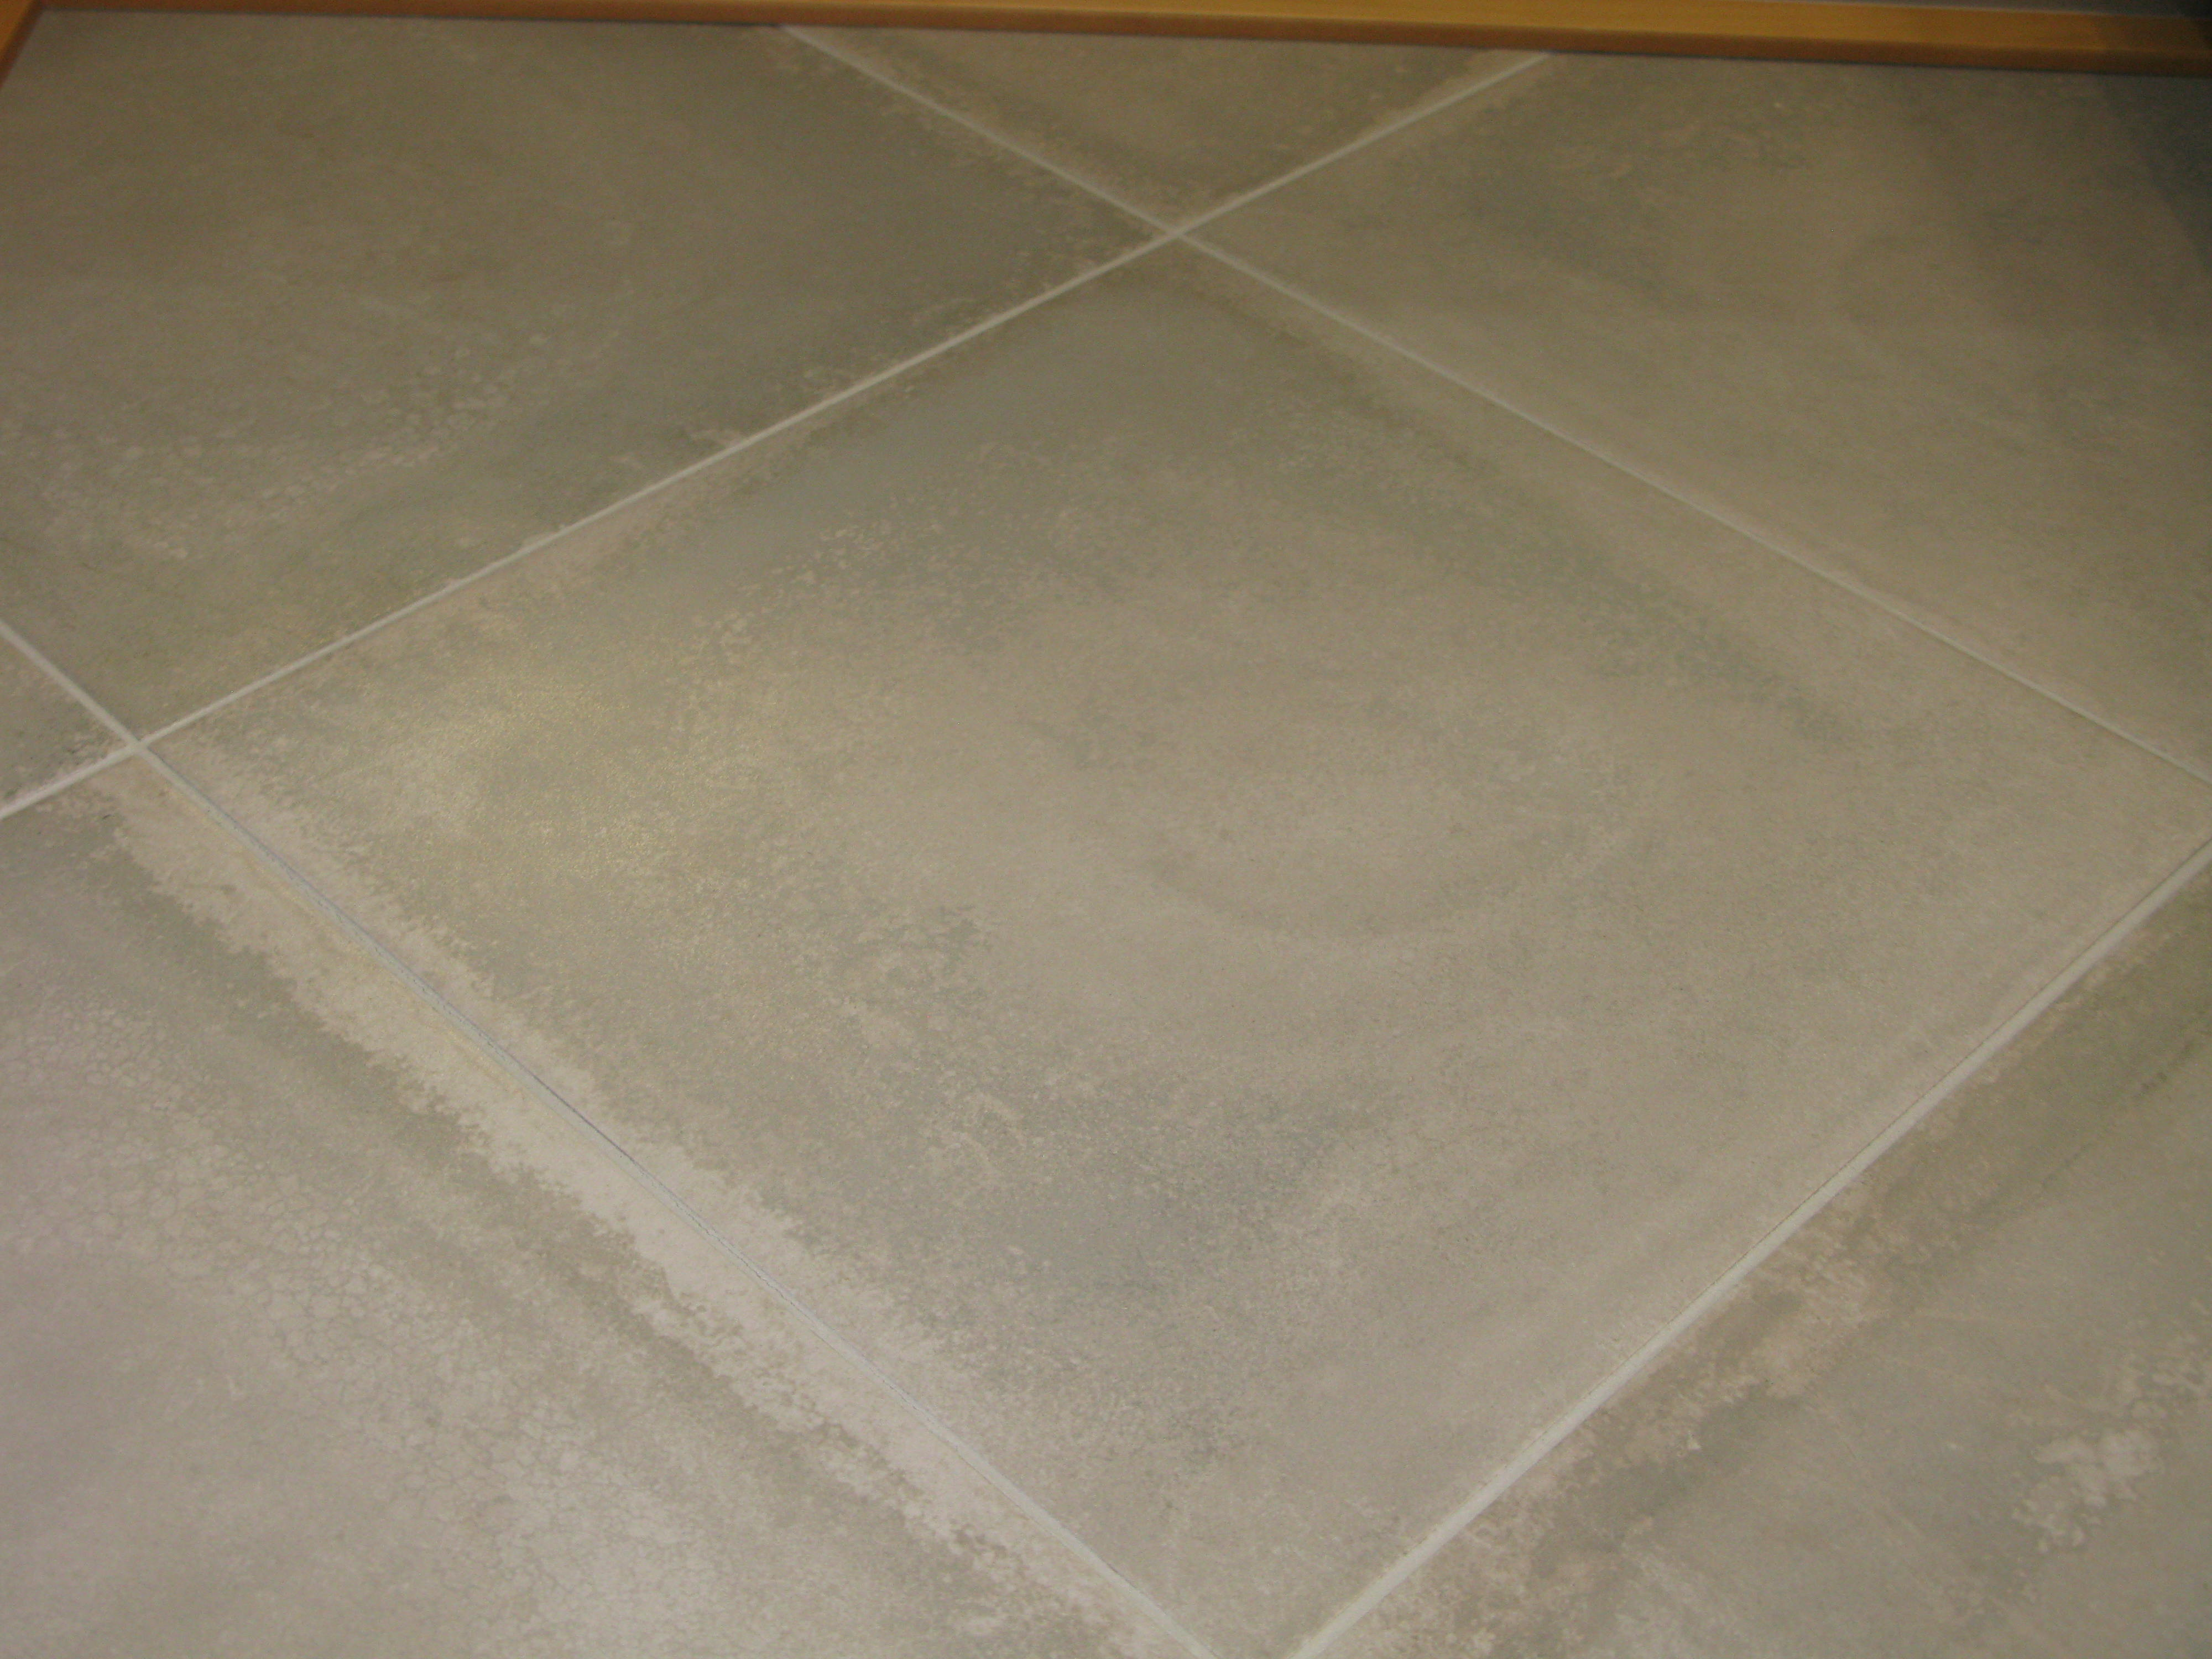 Carrelage 45x45 ring saloni ceramica saloni carrelage for Carrelage 45x45